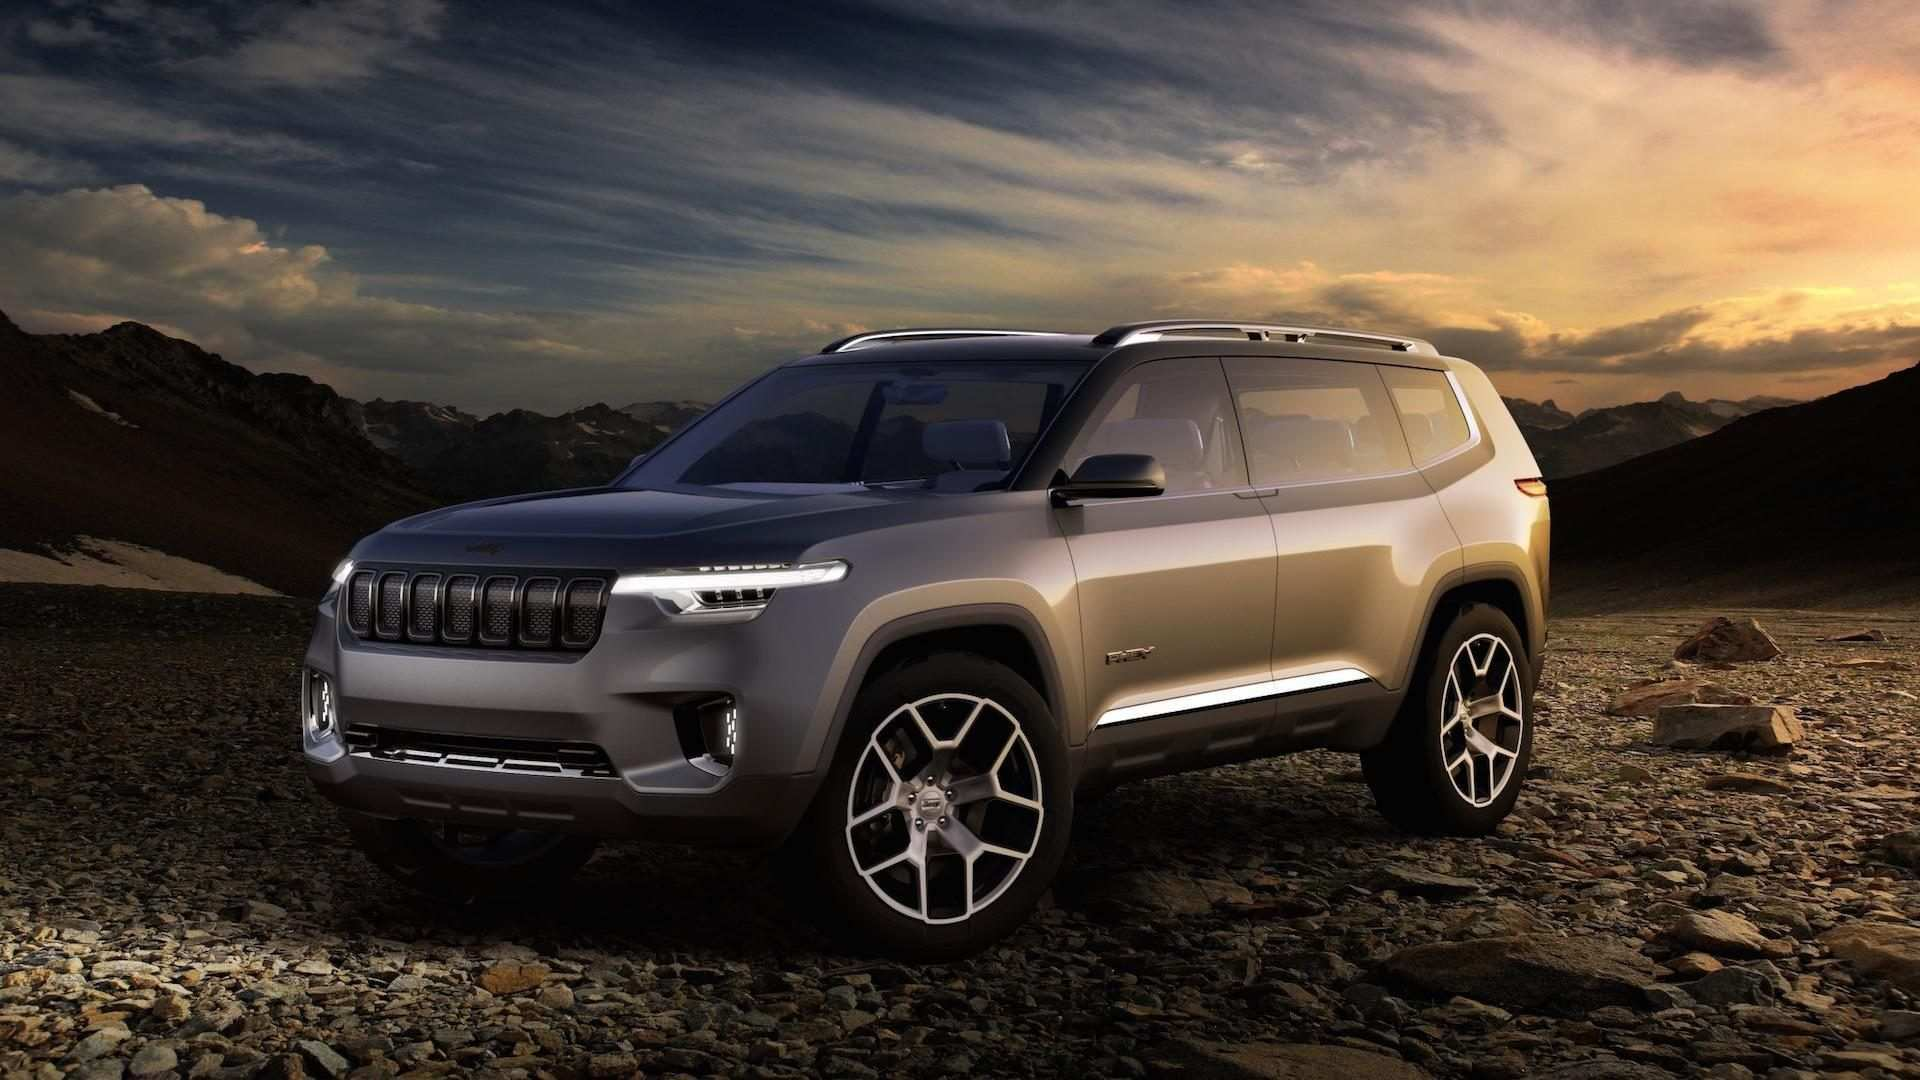 61 Best Review 2020 Jeep Cherokee Images with 2020 Jeep Cherokee